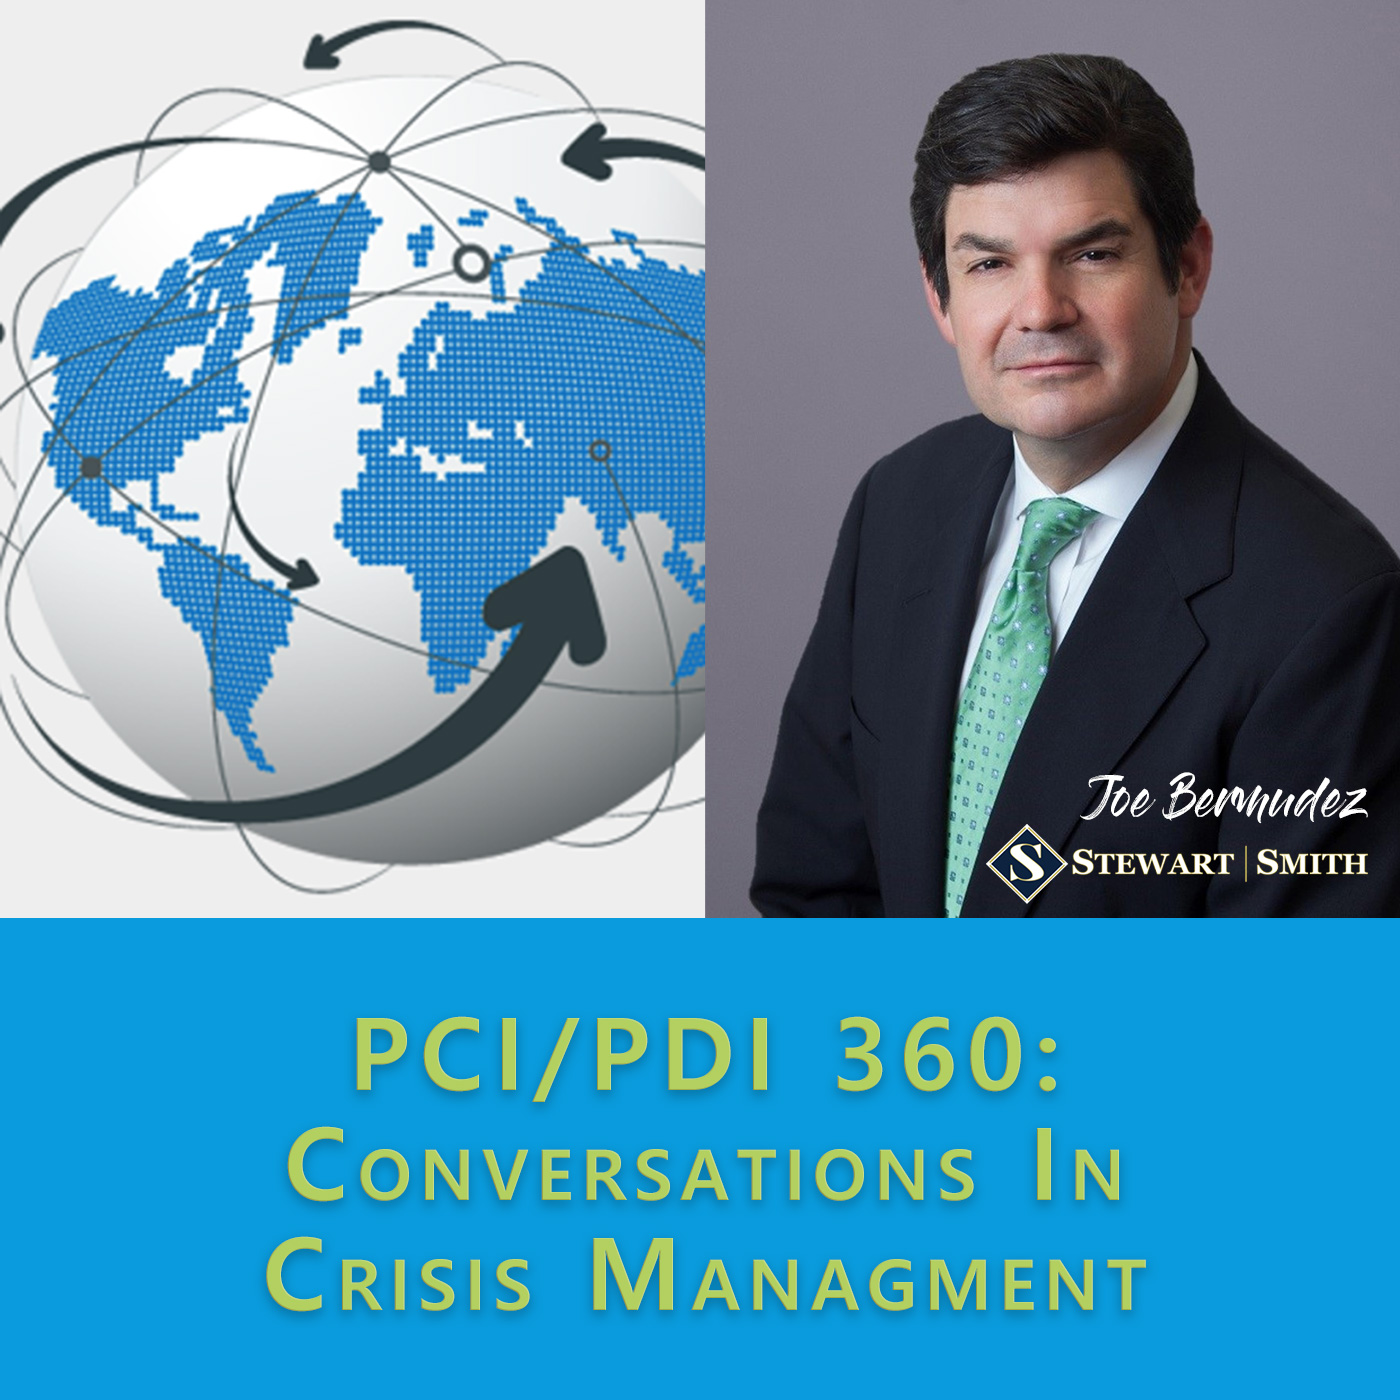 PCI/PDI 360: Conversations in Crisis Management